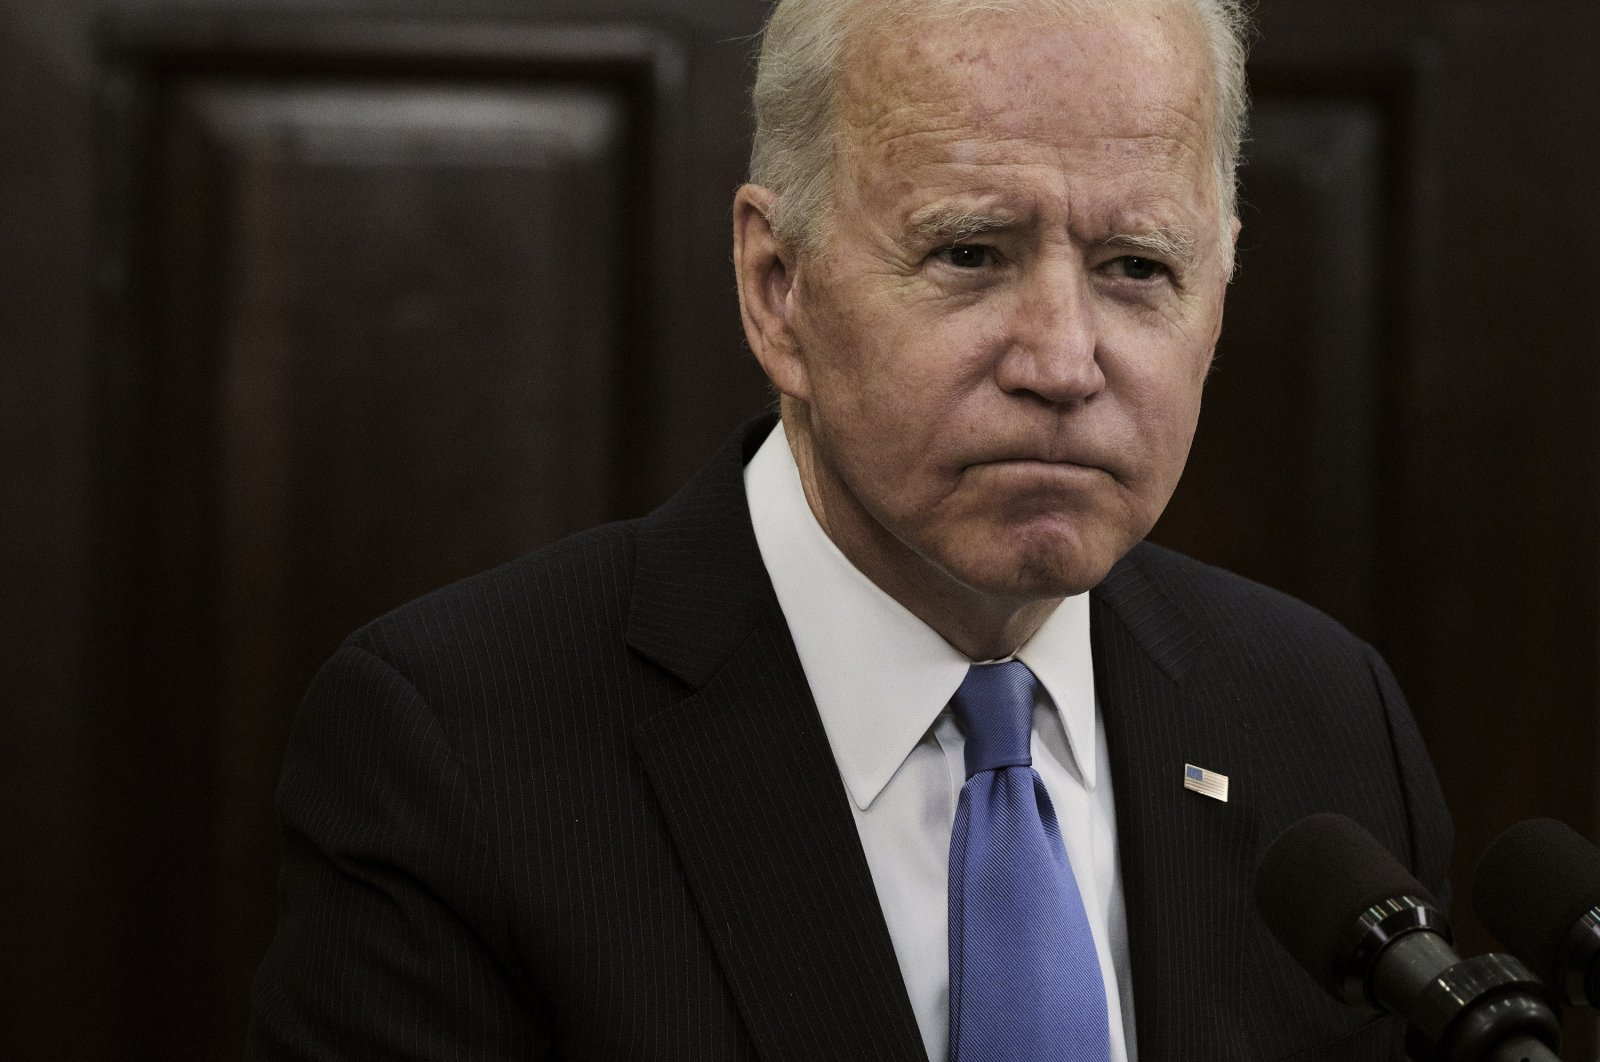 U.S. President Joe Biden speaks about the Colonial Pipeline hacking incident, in the Roosevelt Room at the White House in Washington, D.C., U.S., May 13, 2021. (EPA Photo)